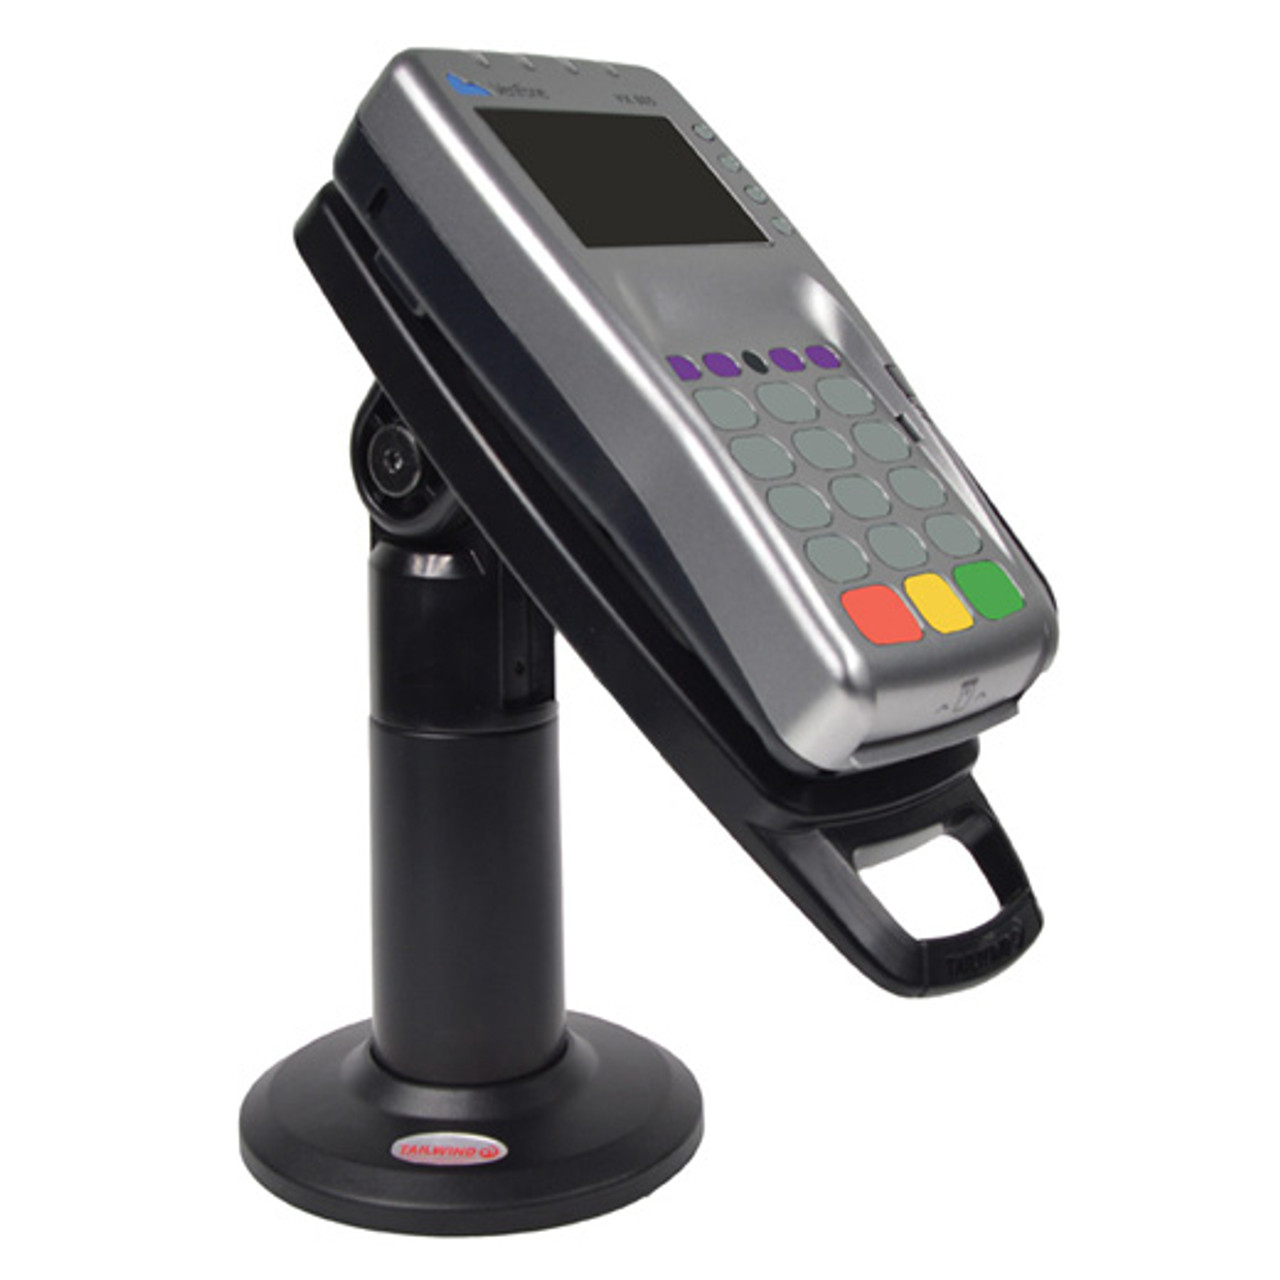 FlexiPole FirstBase Complete for Verifone VX805 or VX820